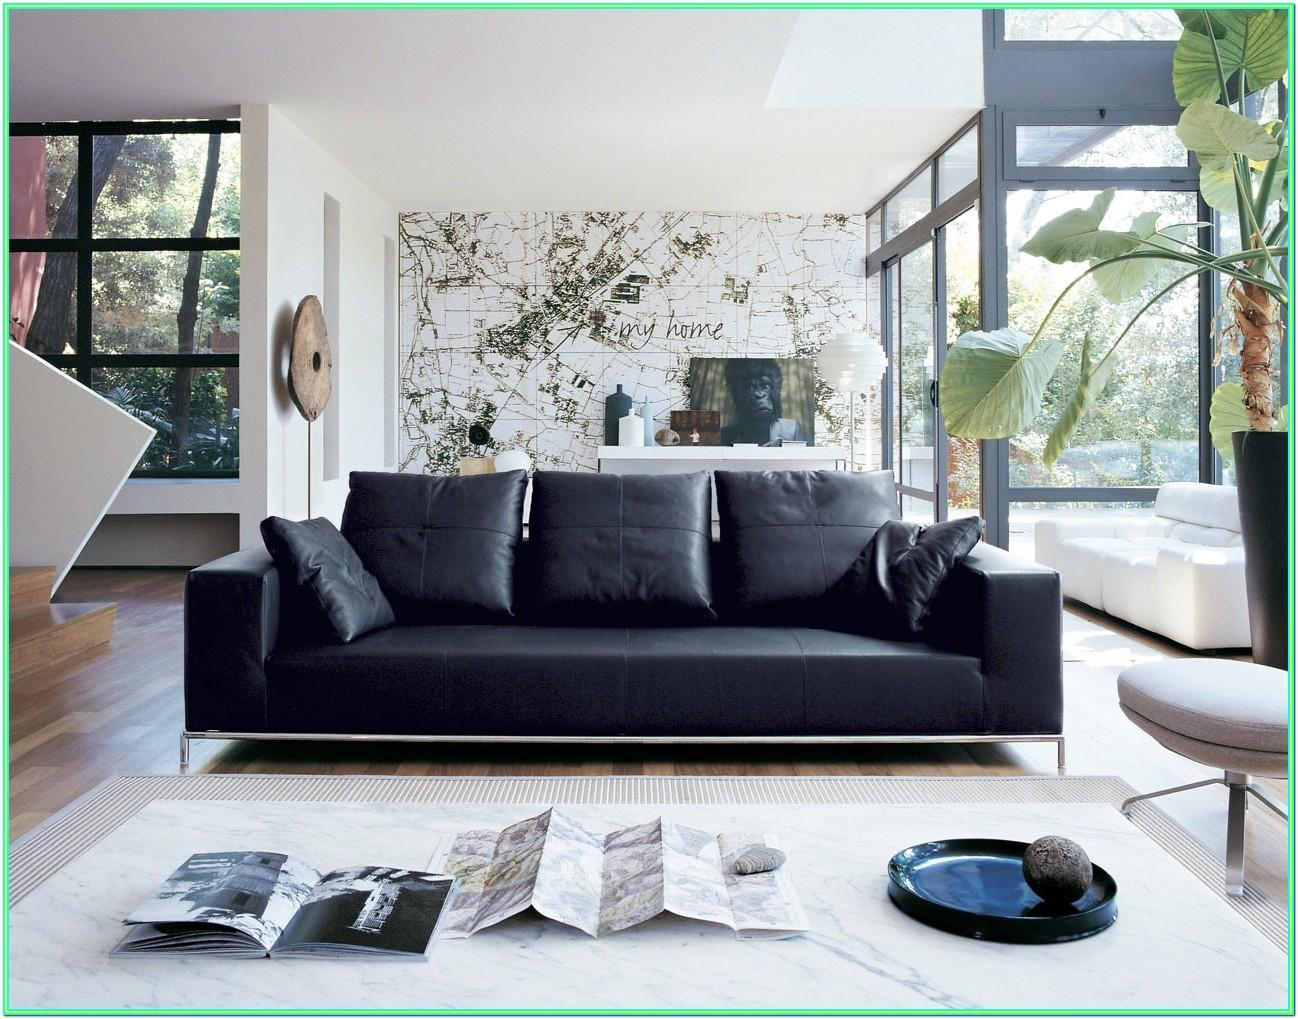 Decorating Ideas For Living Room With Leather Couch